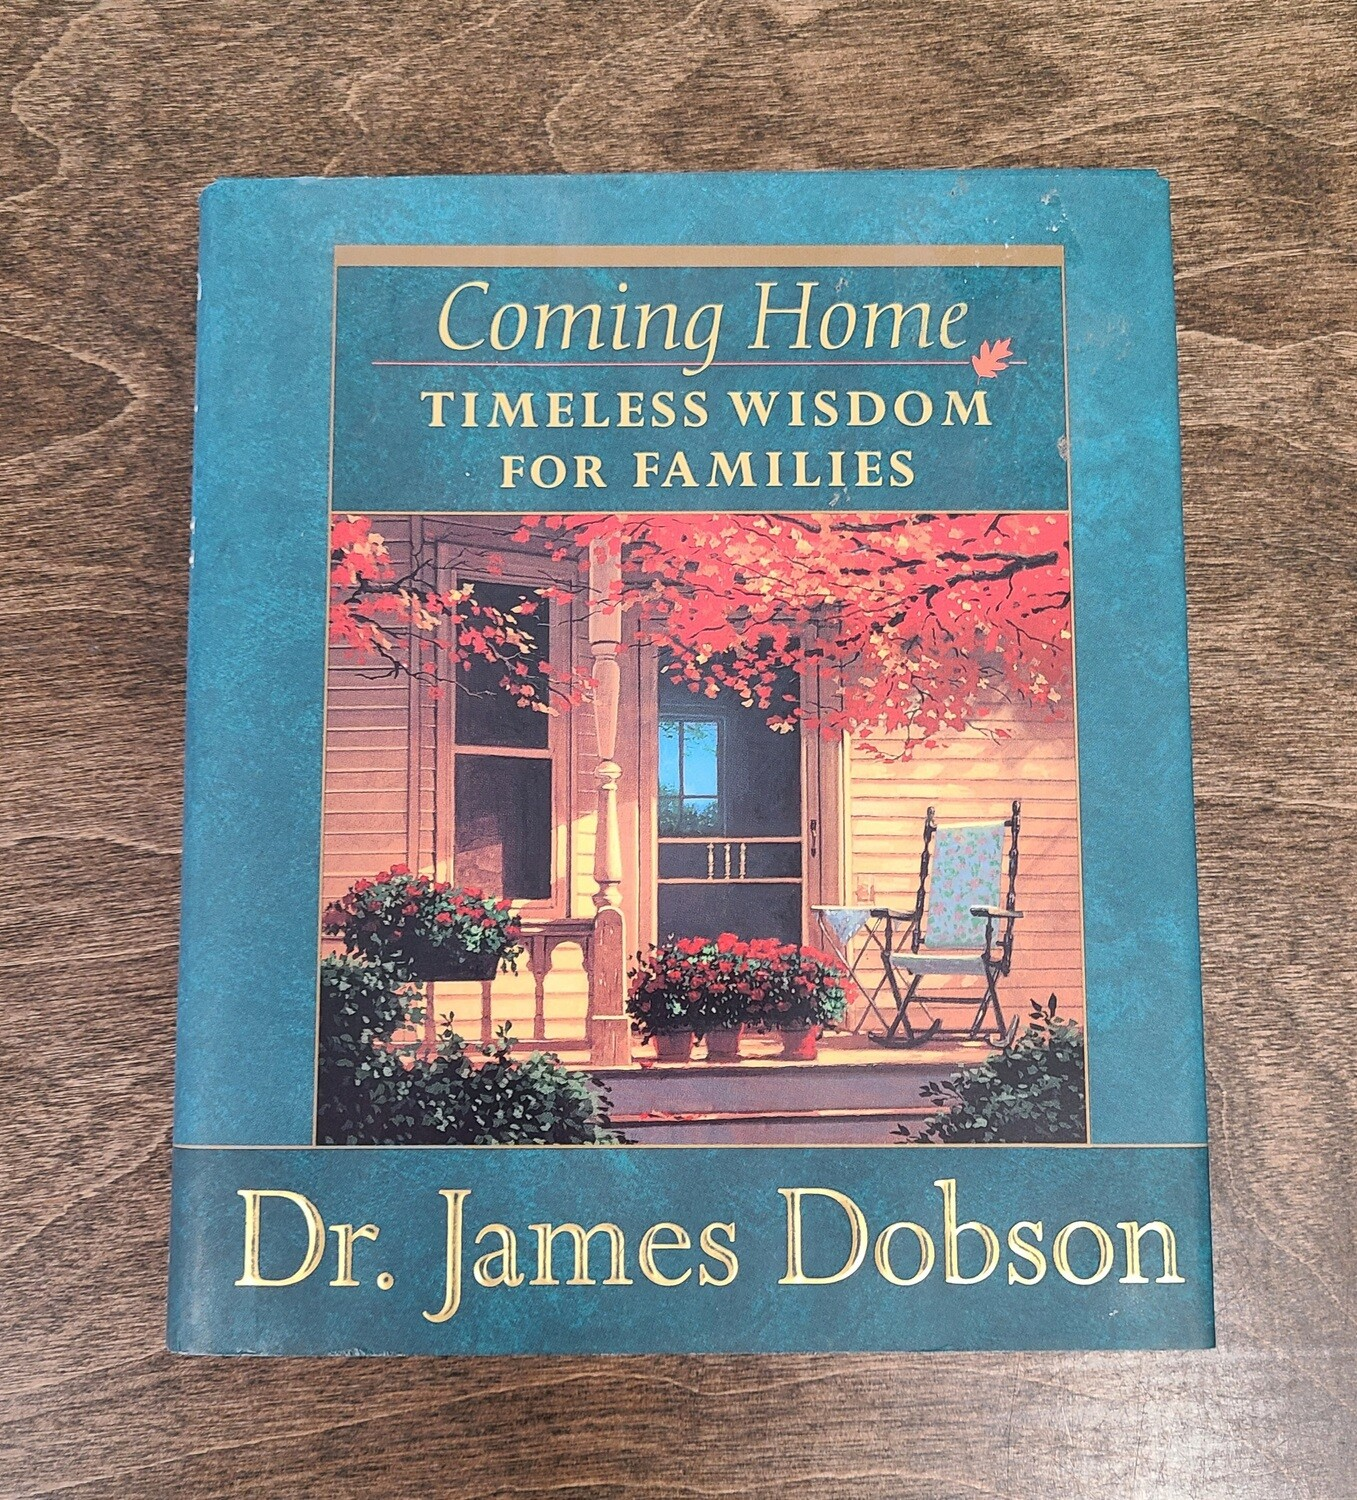 Coming Home: Timeless Wisdom for Families by Dr. James Dobson